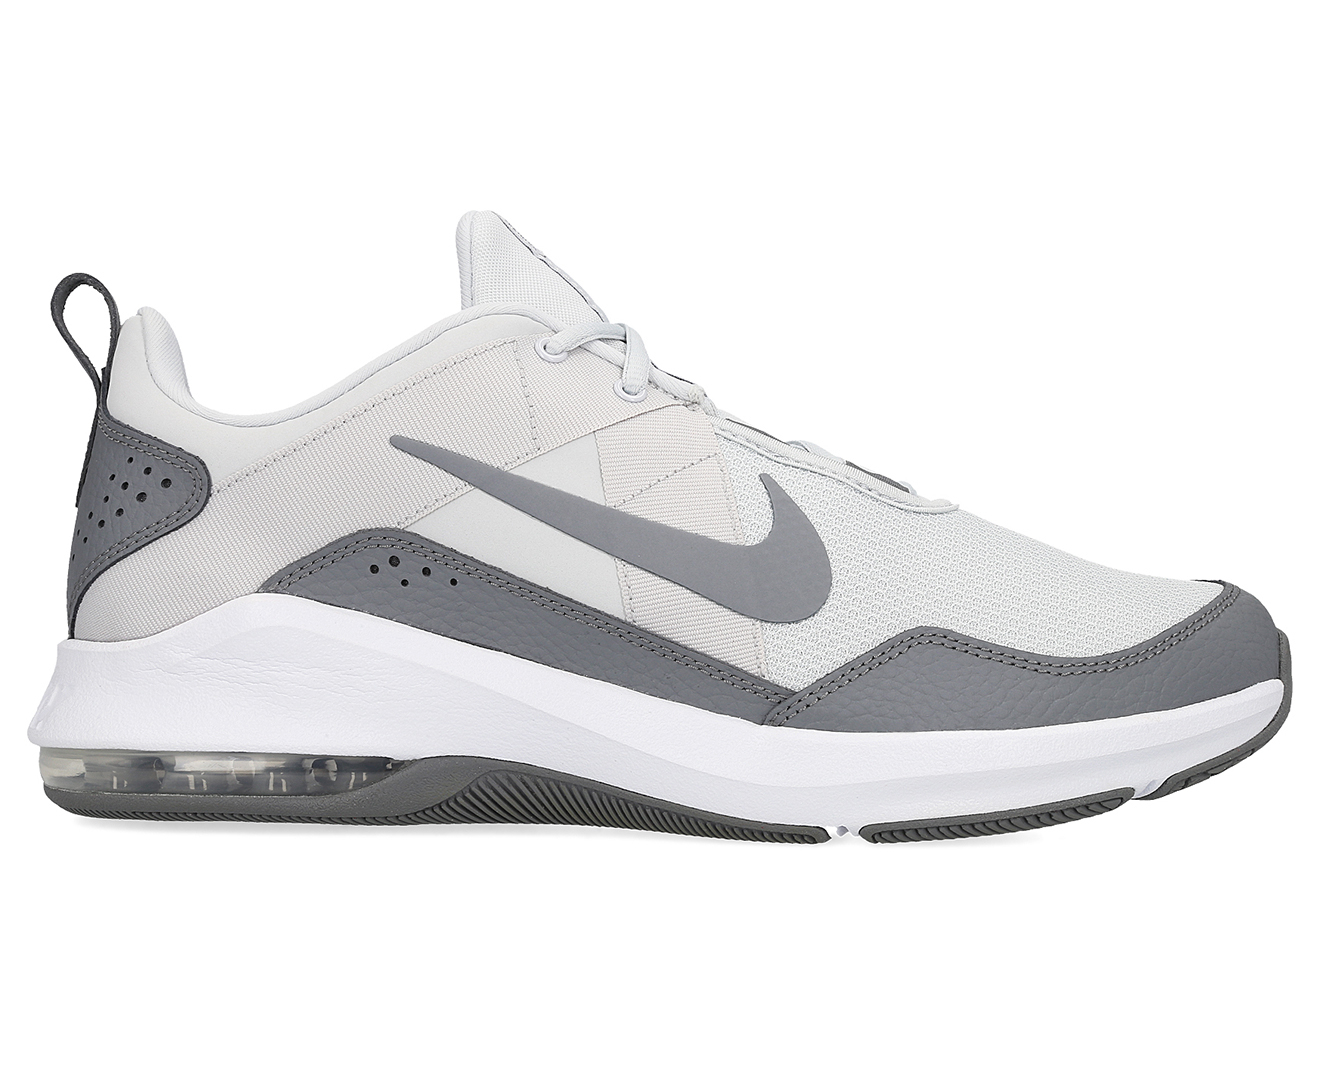 Nike Men's Air Max Alpha Trainer 2 Sports Shoes PlatinumGrey White